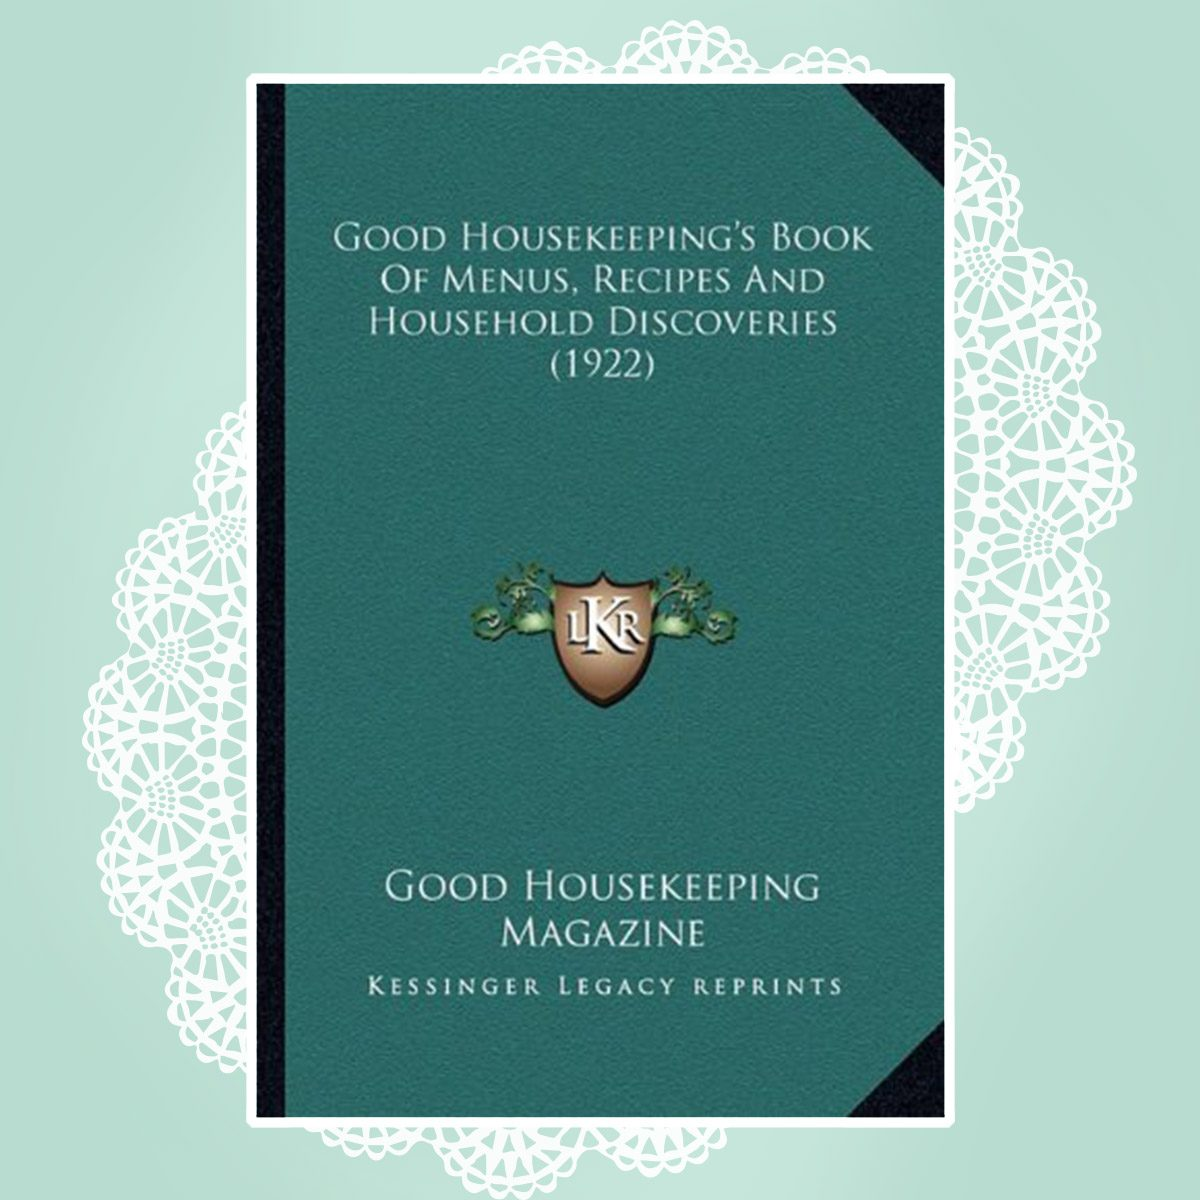 Good Housekeeping's Book Of Menus, Recipes And Household Discoveries